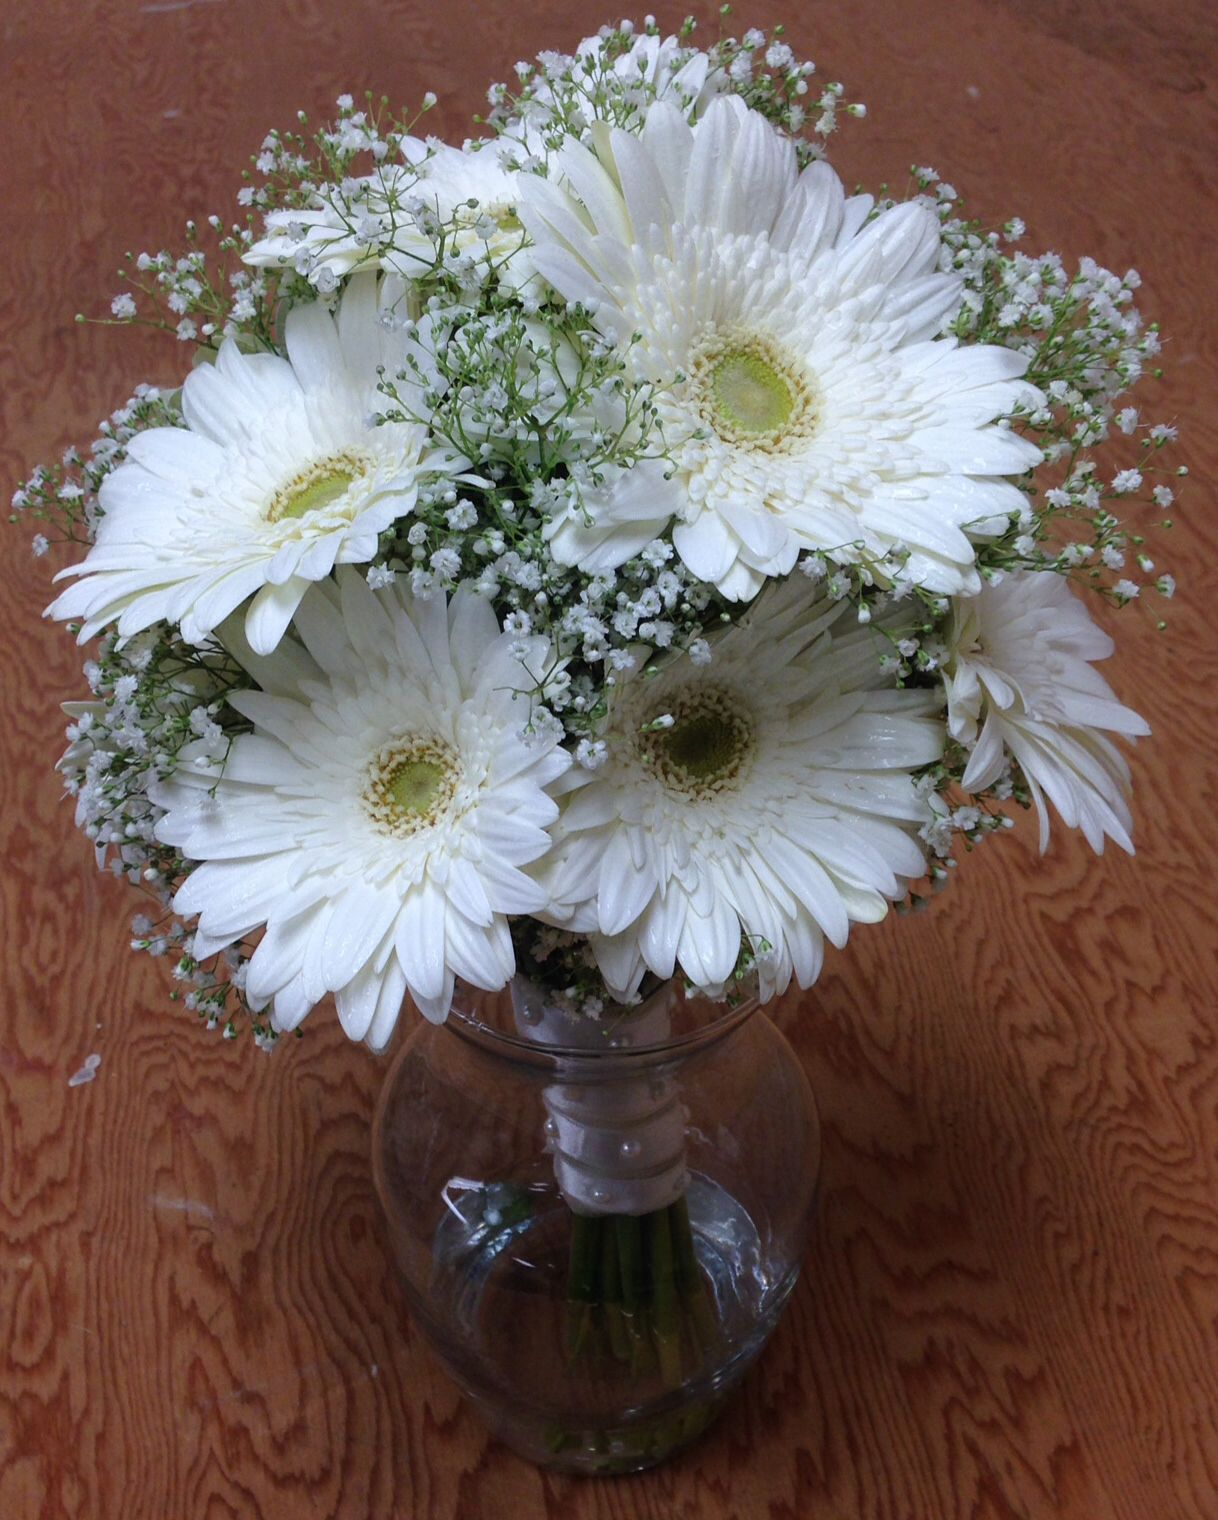 Brides bouquet, white gerber daisies, babies breath